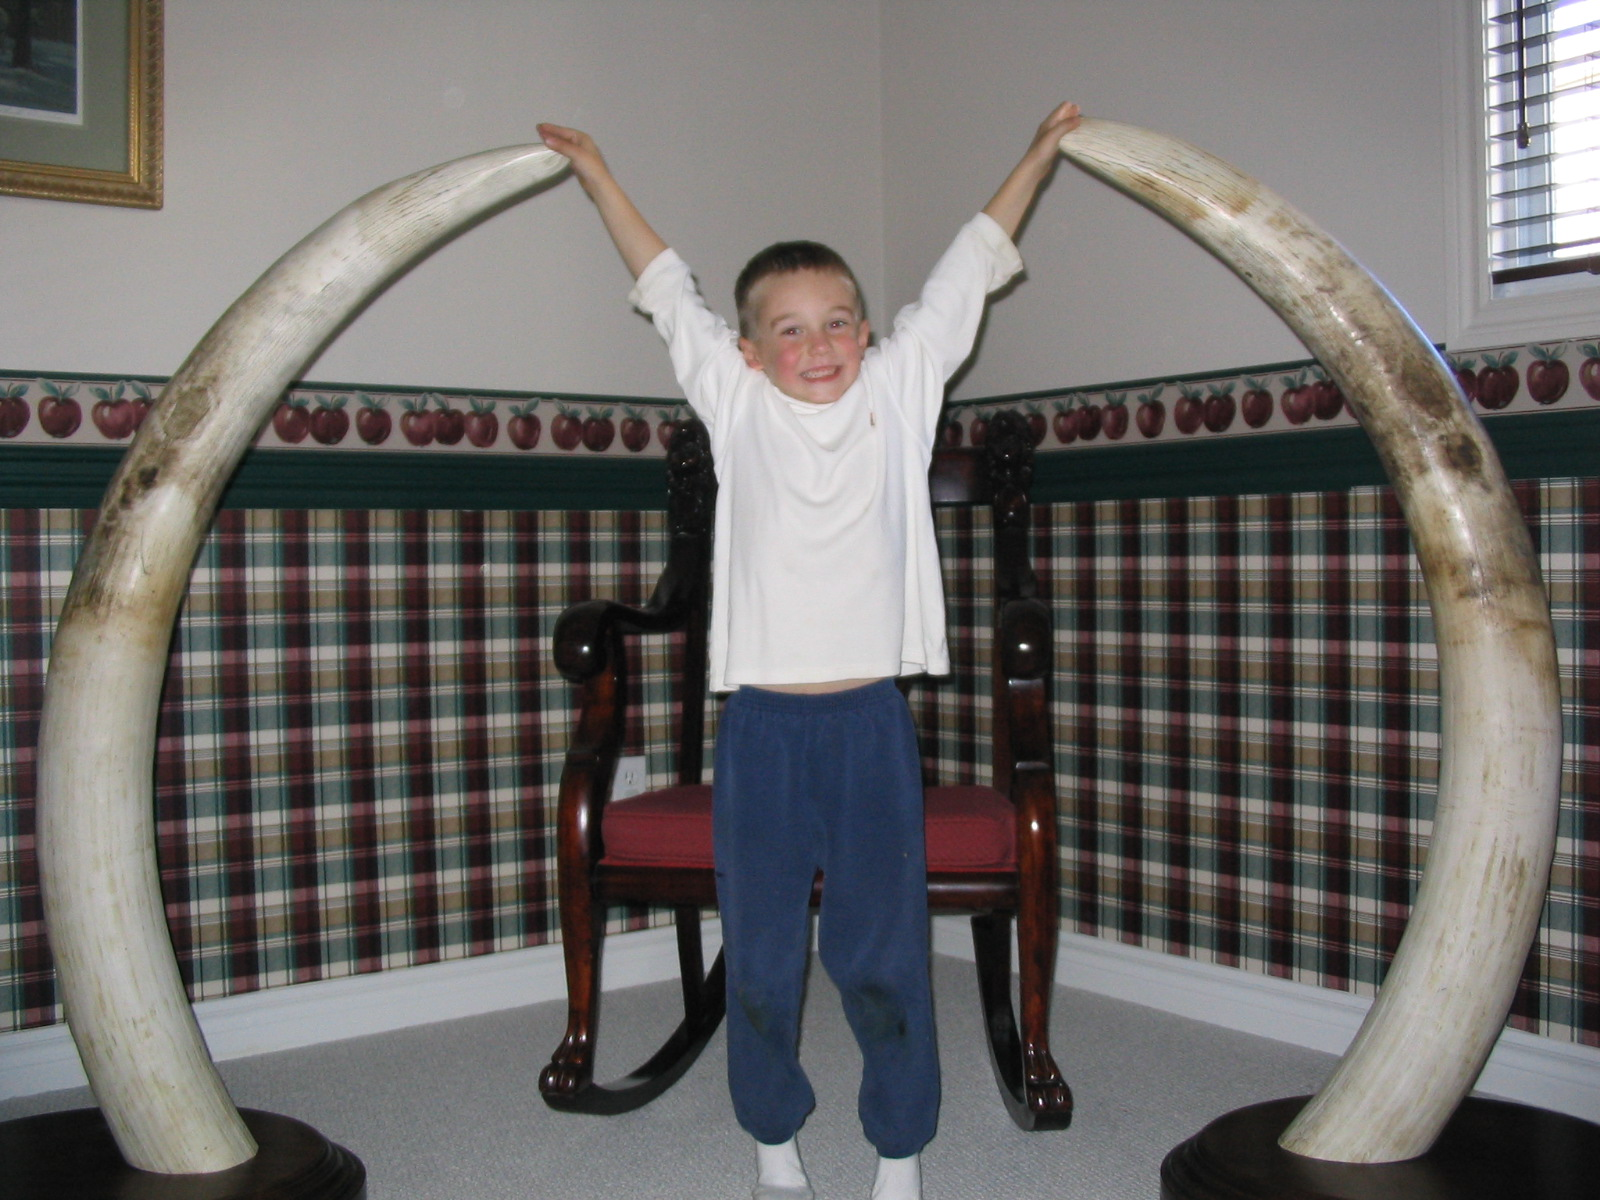 Elephant tusks. 75 pounders